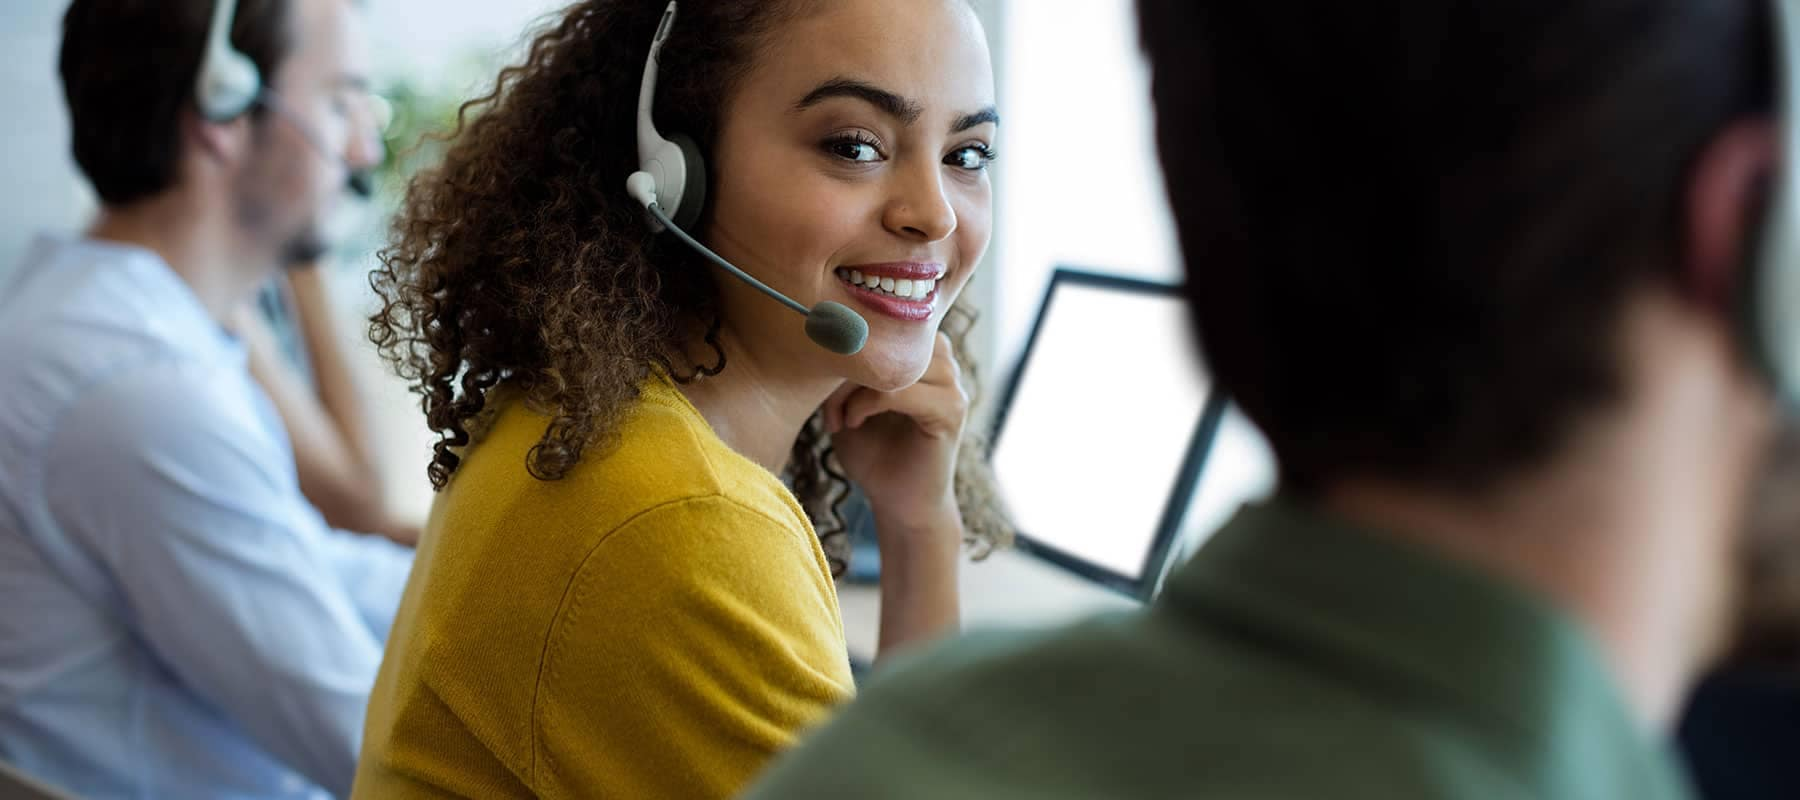 customer service rep answers call in her headset